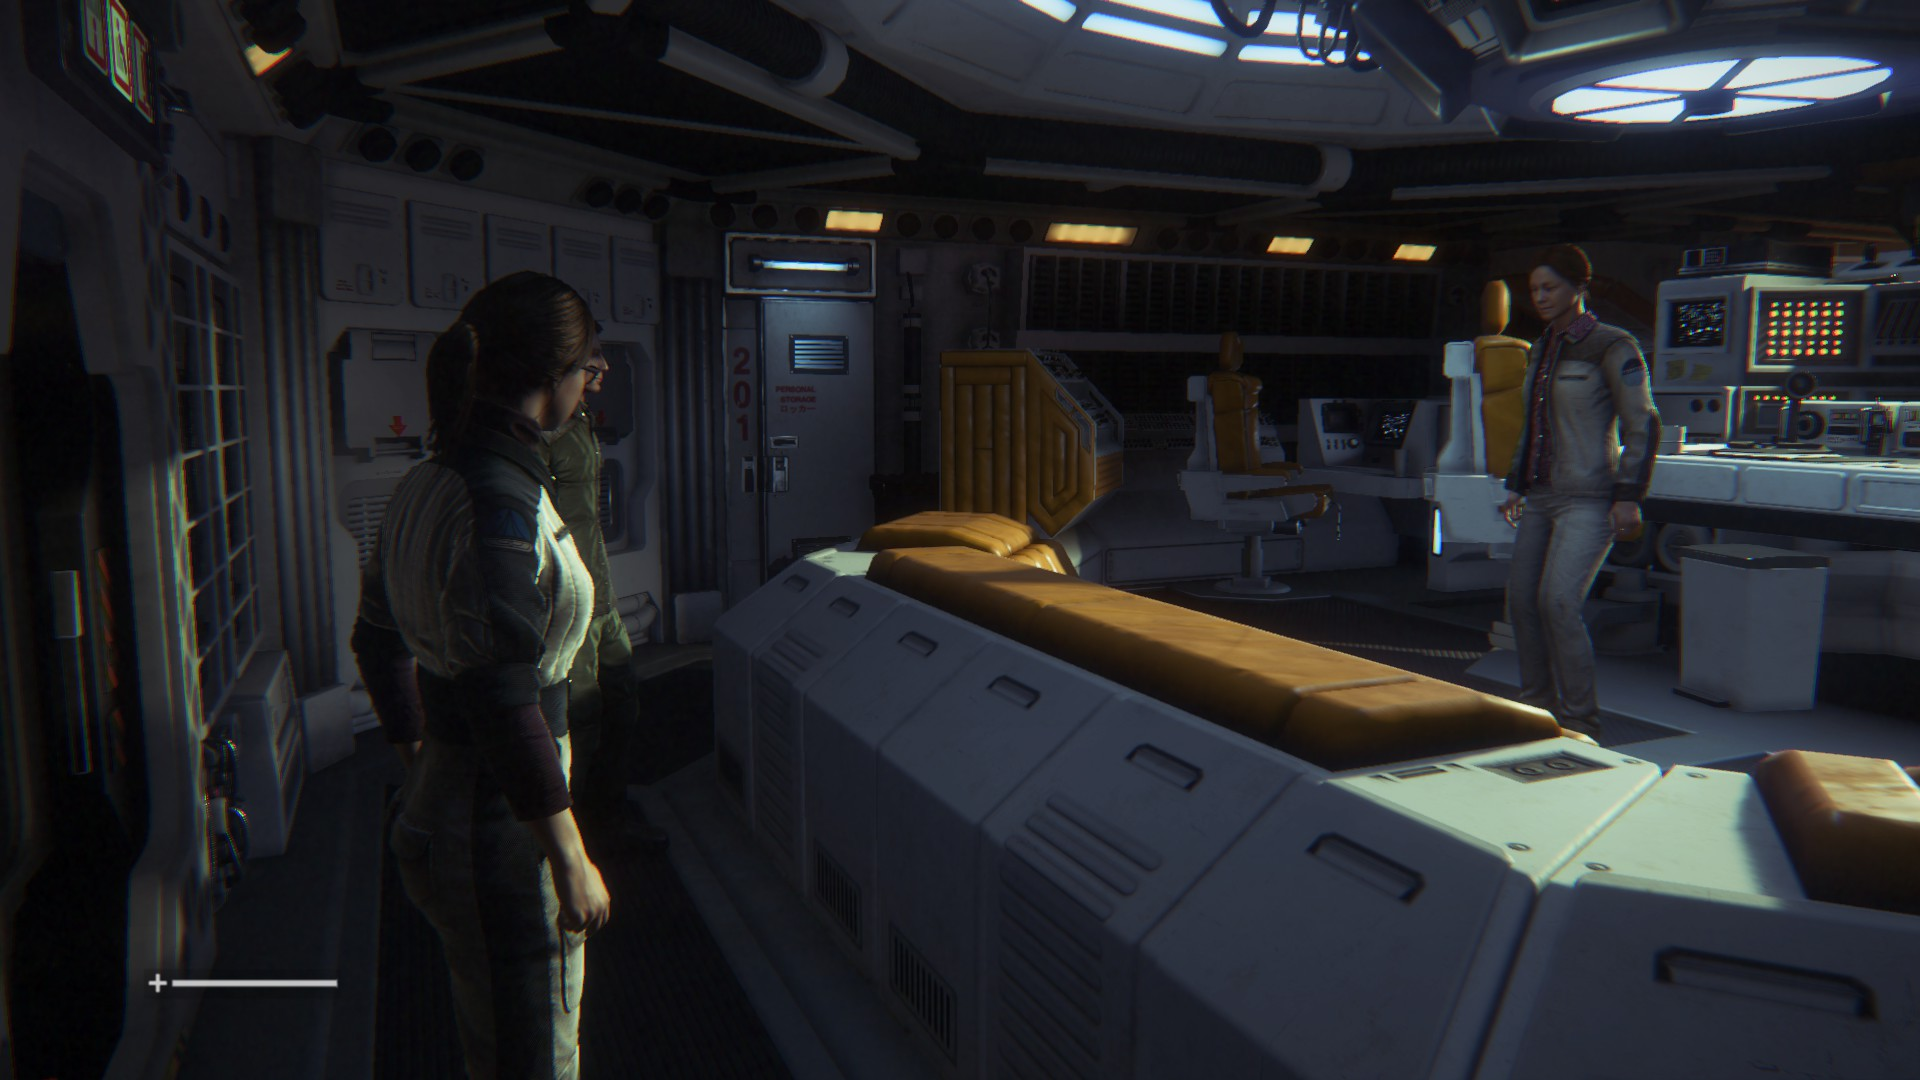 alien isolation gameplay no commentary 1080p backgrounds